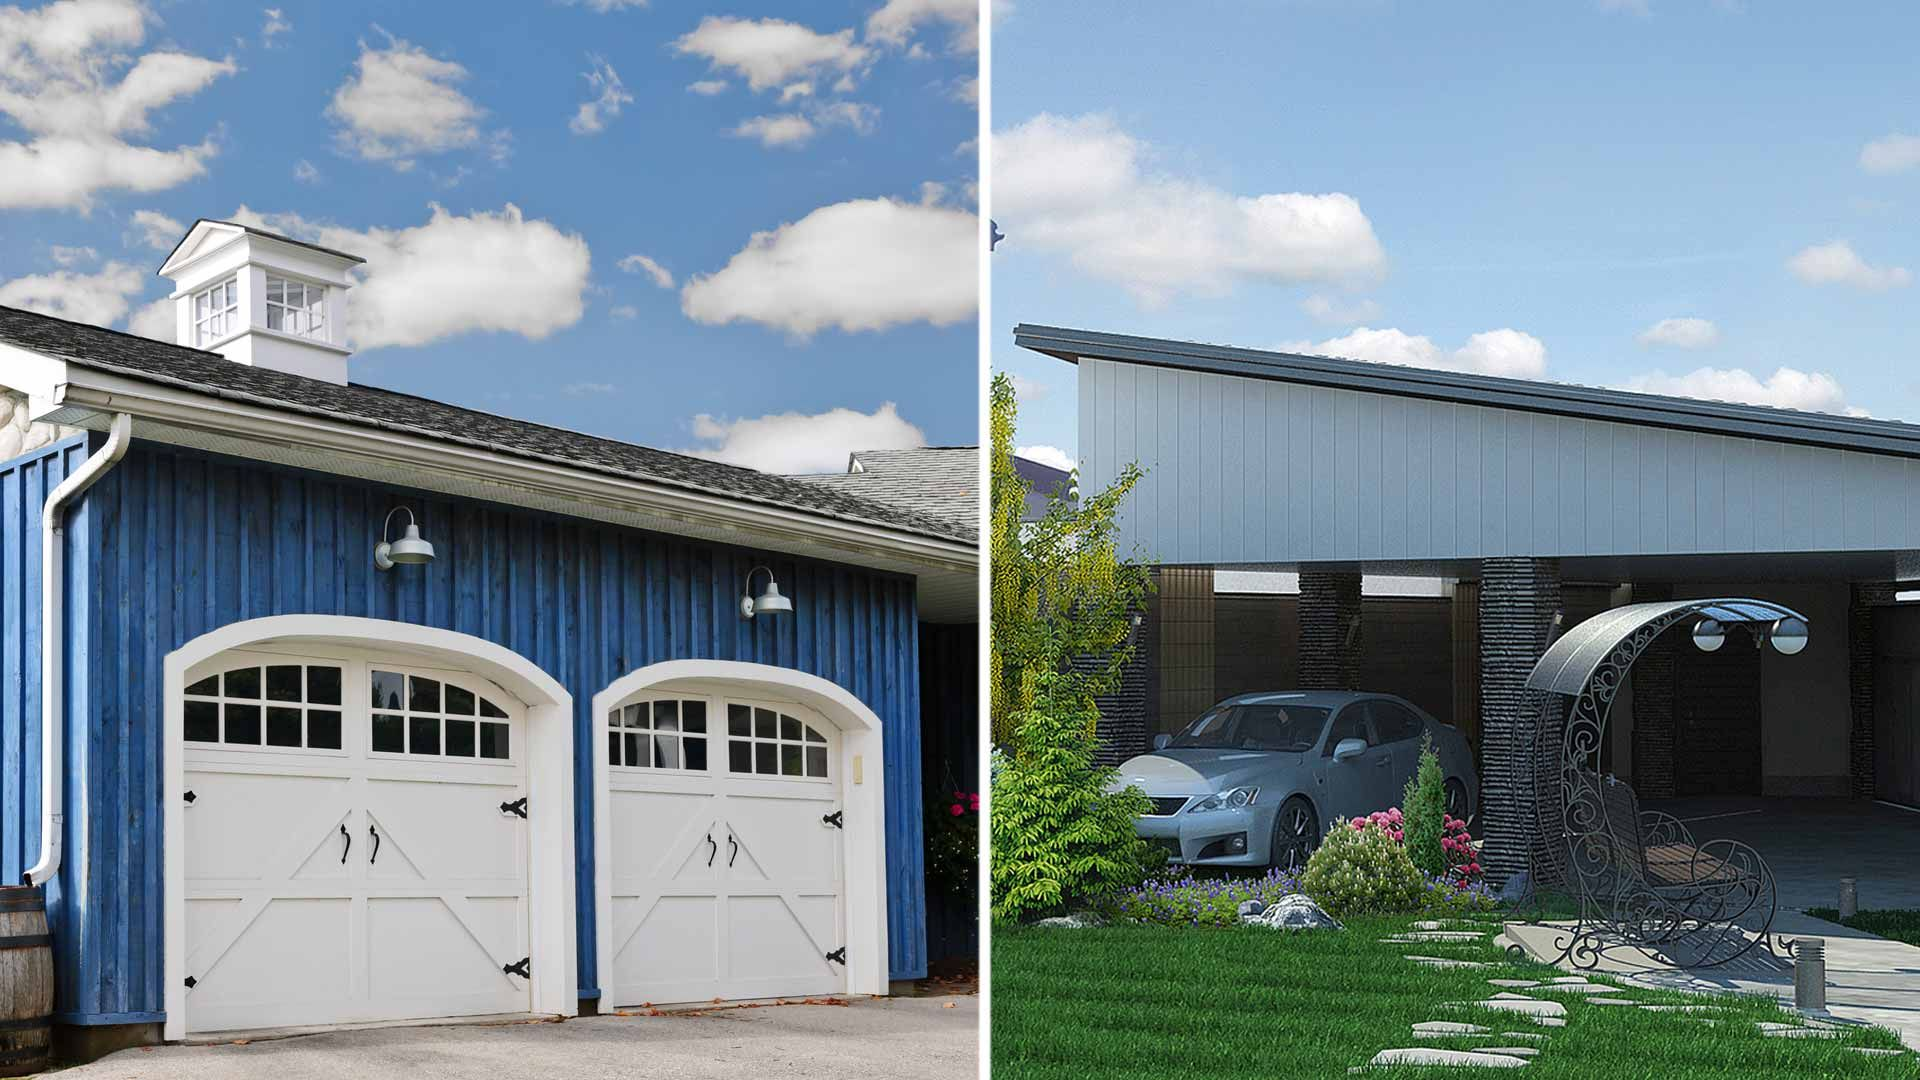 Garages vs. Carports Which is best for you? Building a